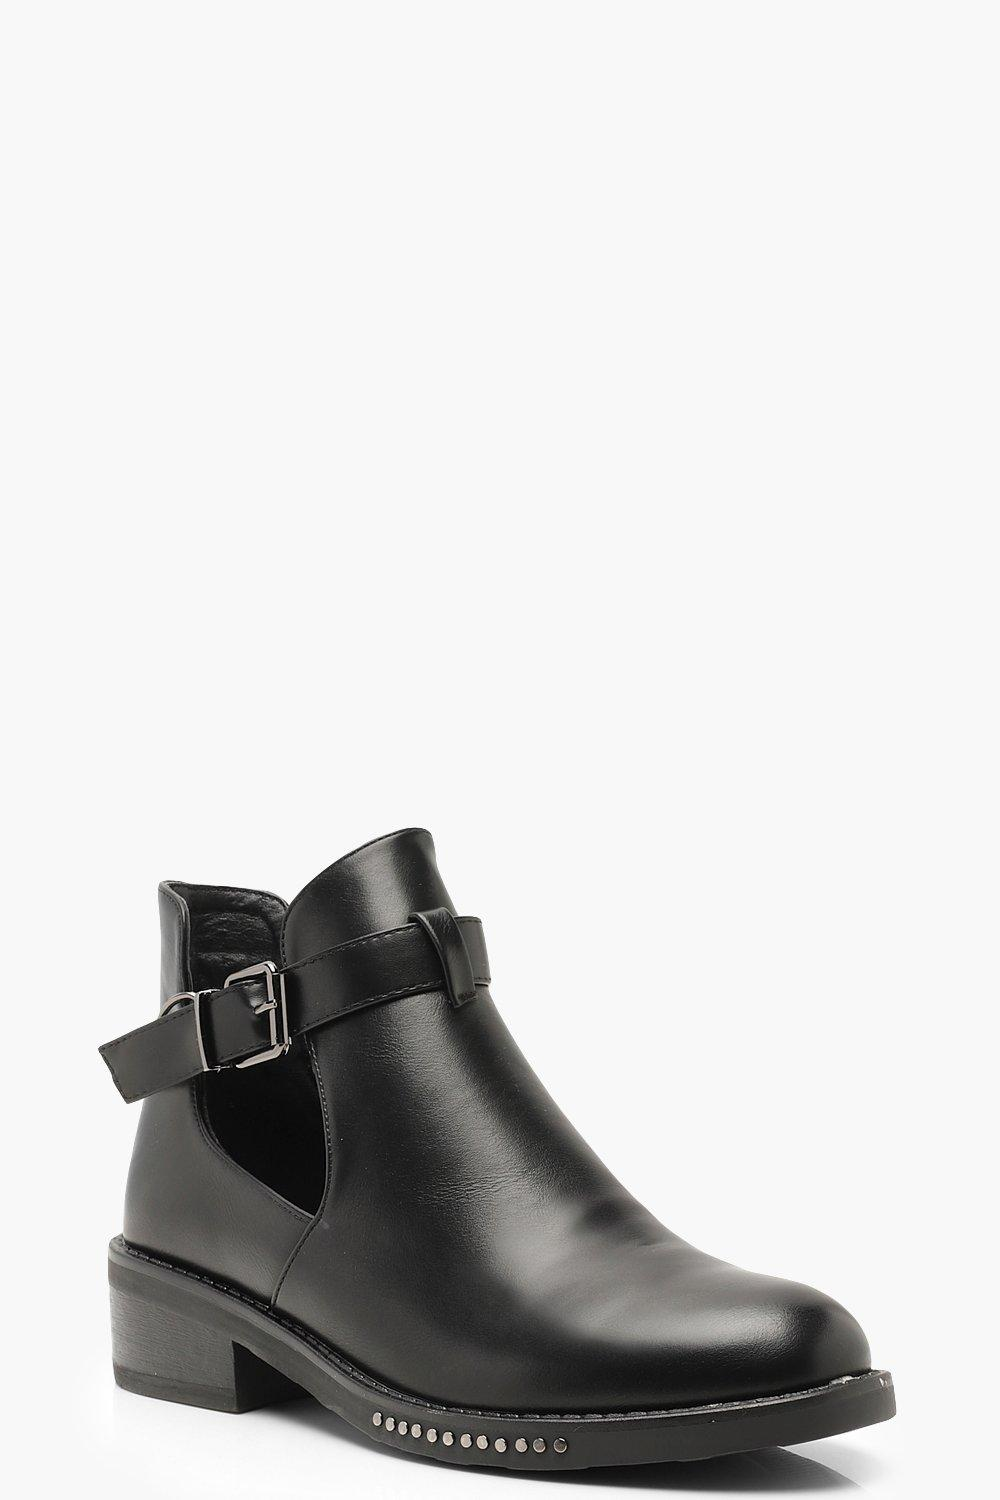 competitive price 8aac7 69518 Chelsea-Stiefel mit verzierter Kette | Boohoo